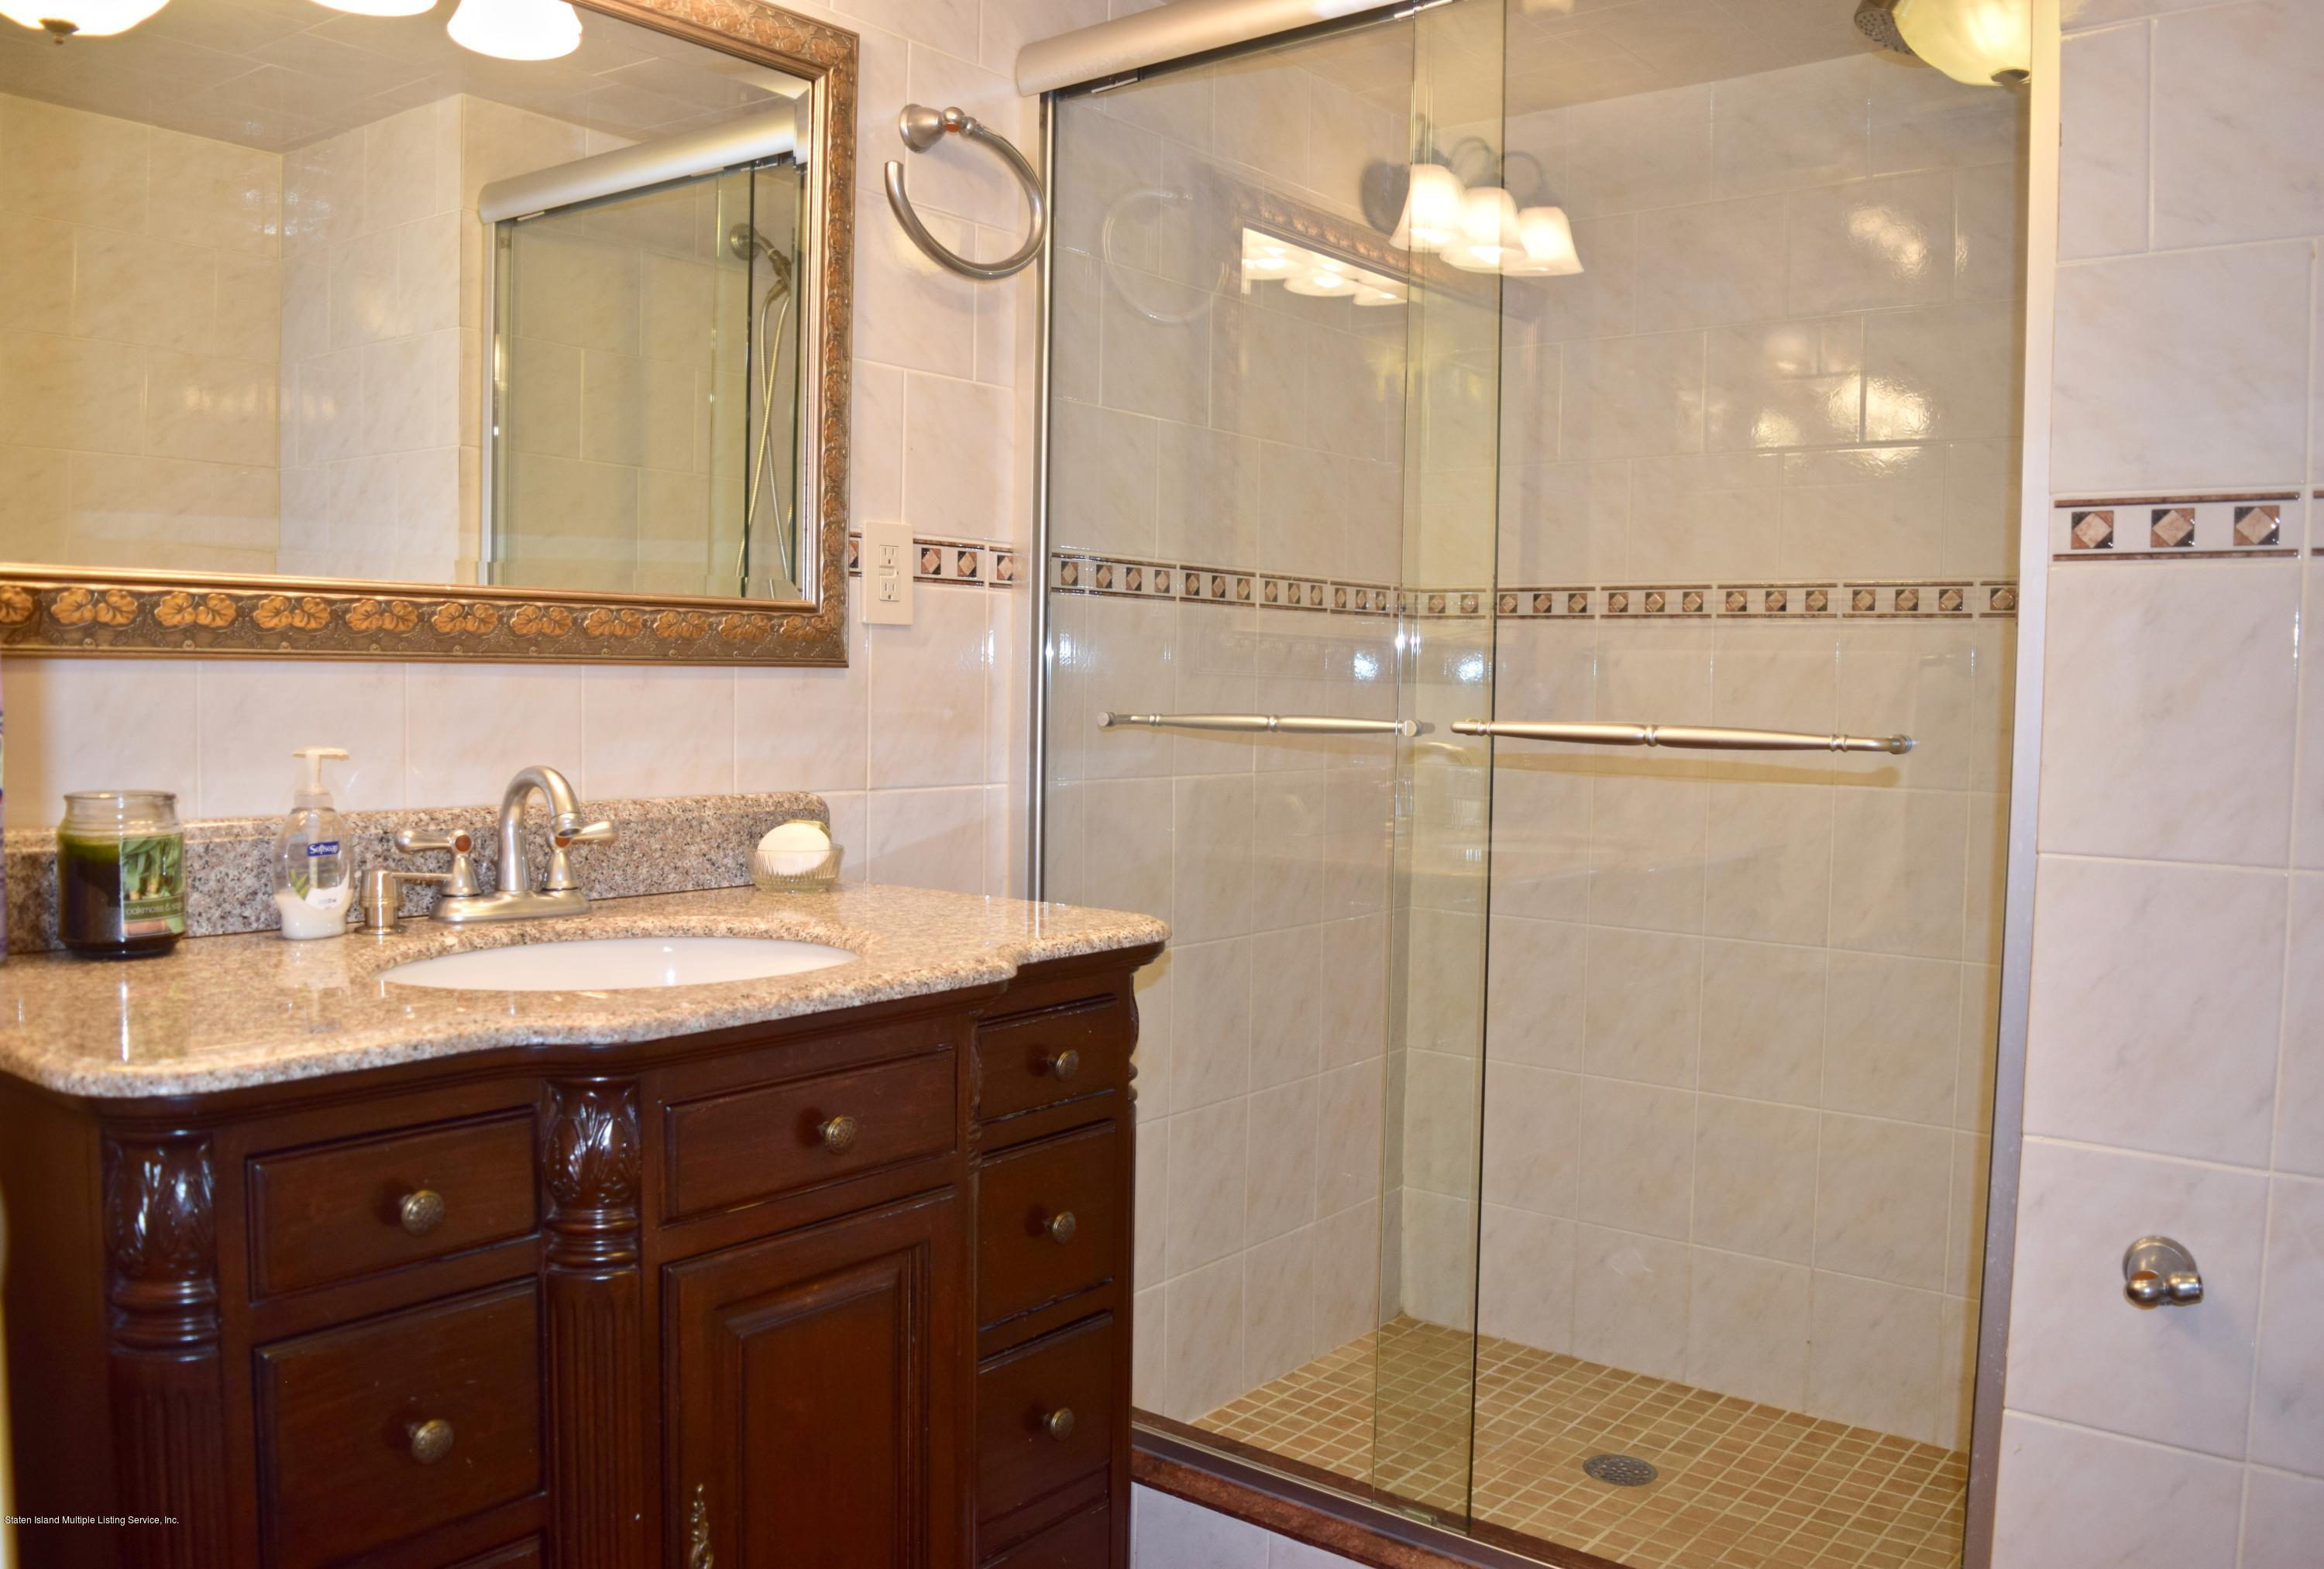 Single Family - Detached 107 Northern Boulevard  Staten Island, NY 10301, MLS-1124986-22